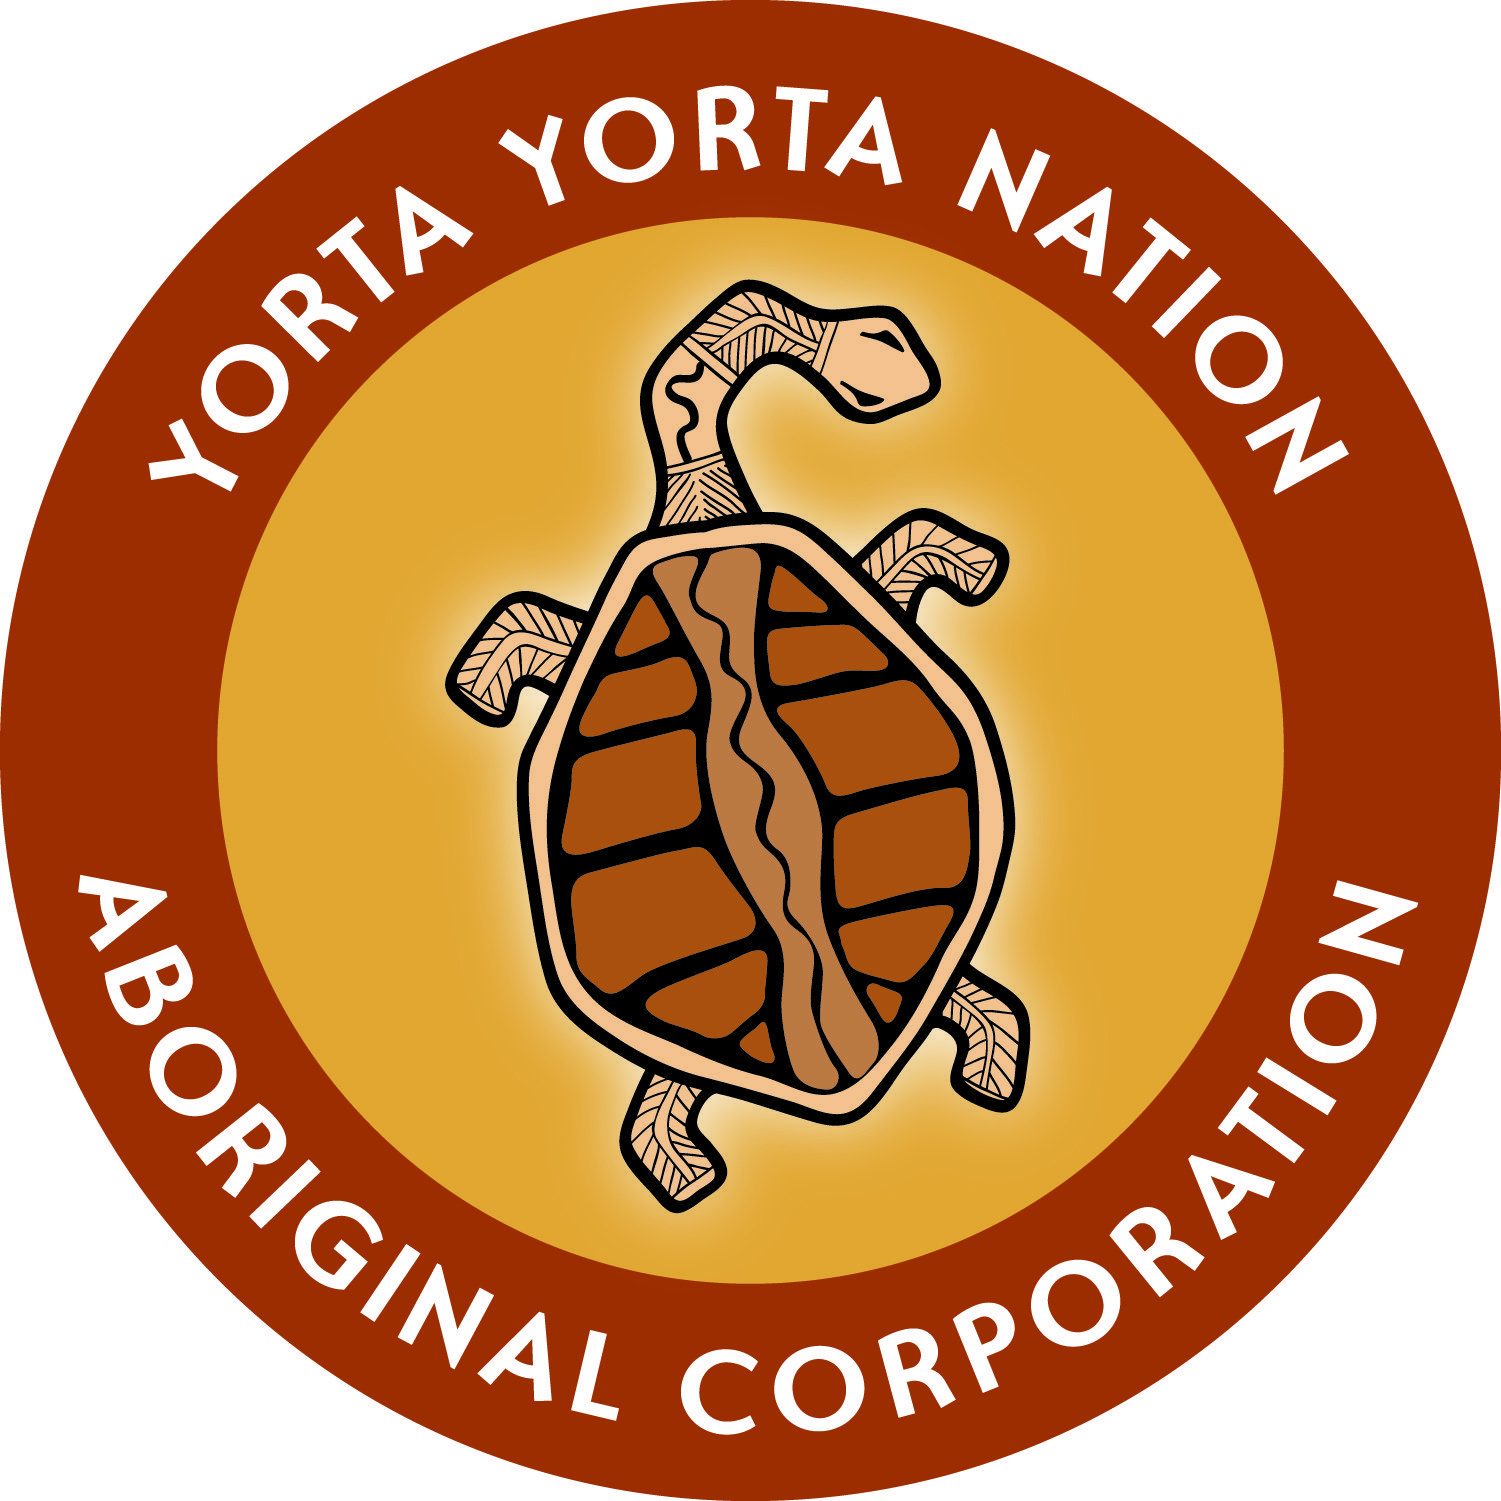 YORTA YORTA NATION logo